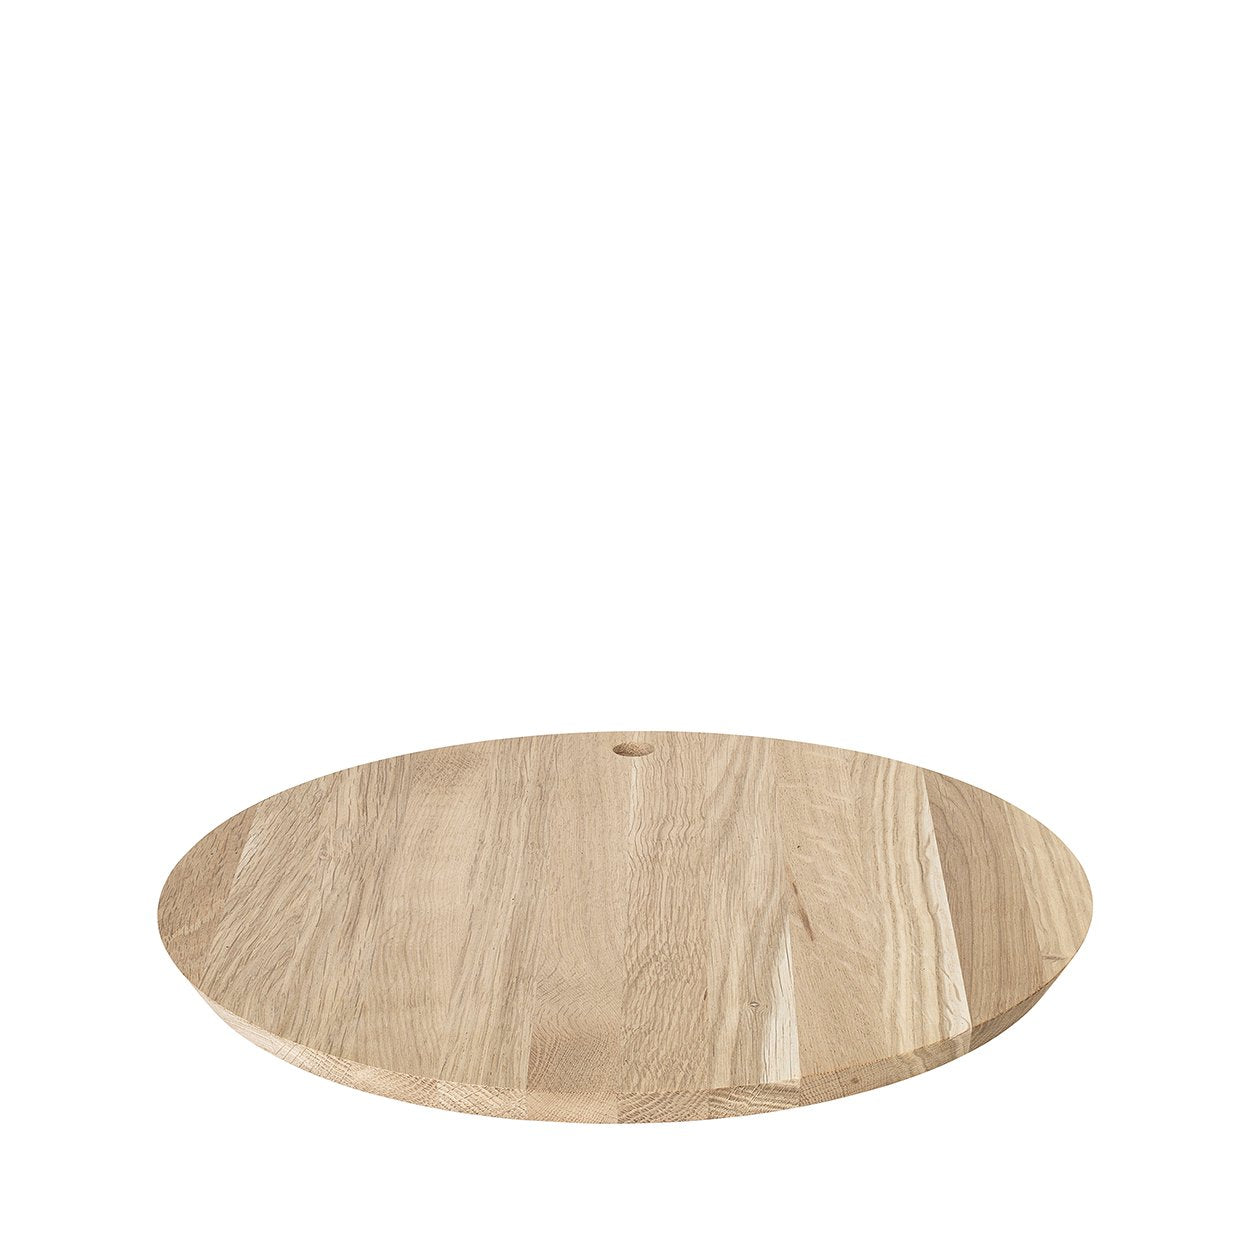 Blomus BORDA Oak Cutting Board Round 12 Inch